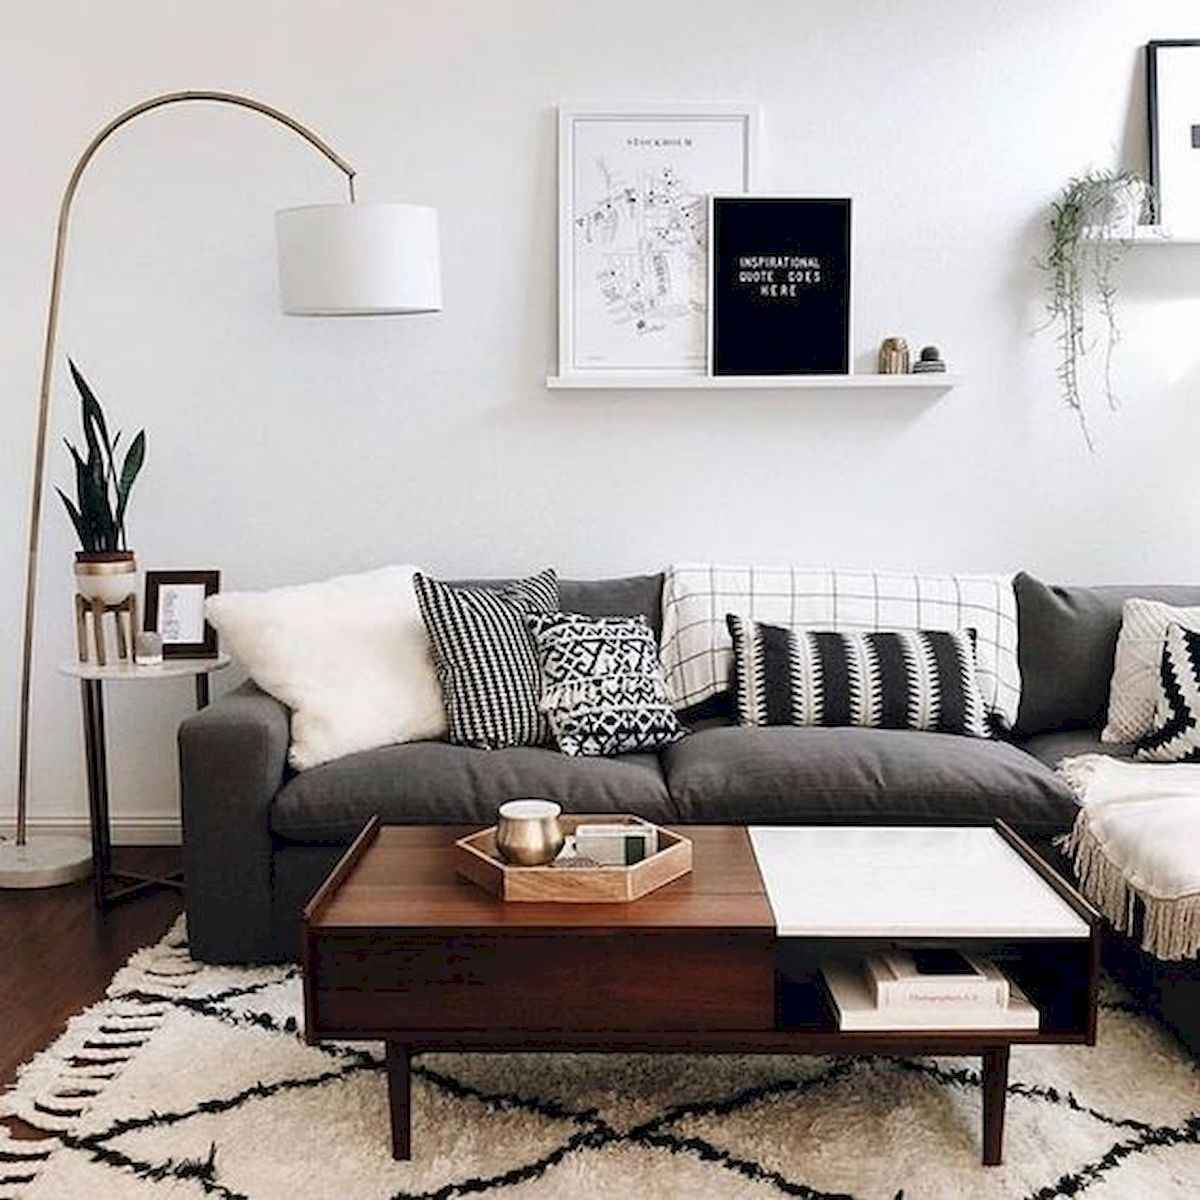 70 Stunning Grey White Black Living Room Decor Ideas And Remodel (17)